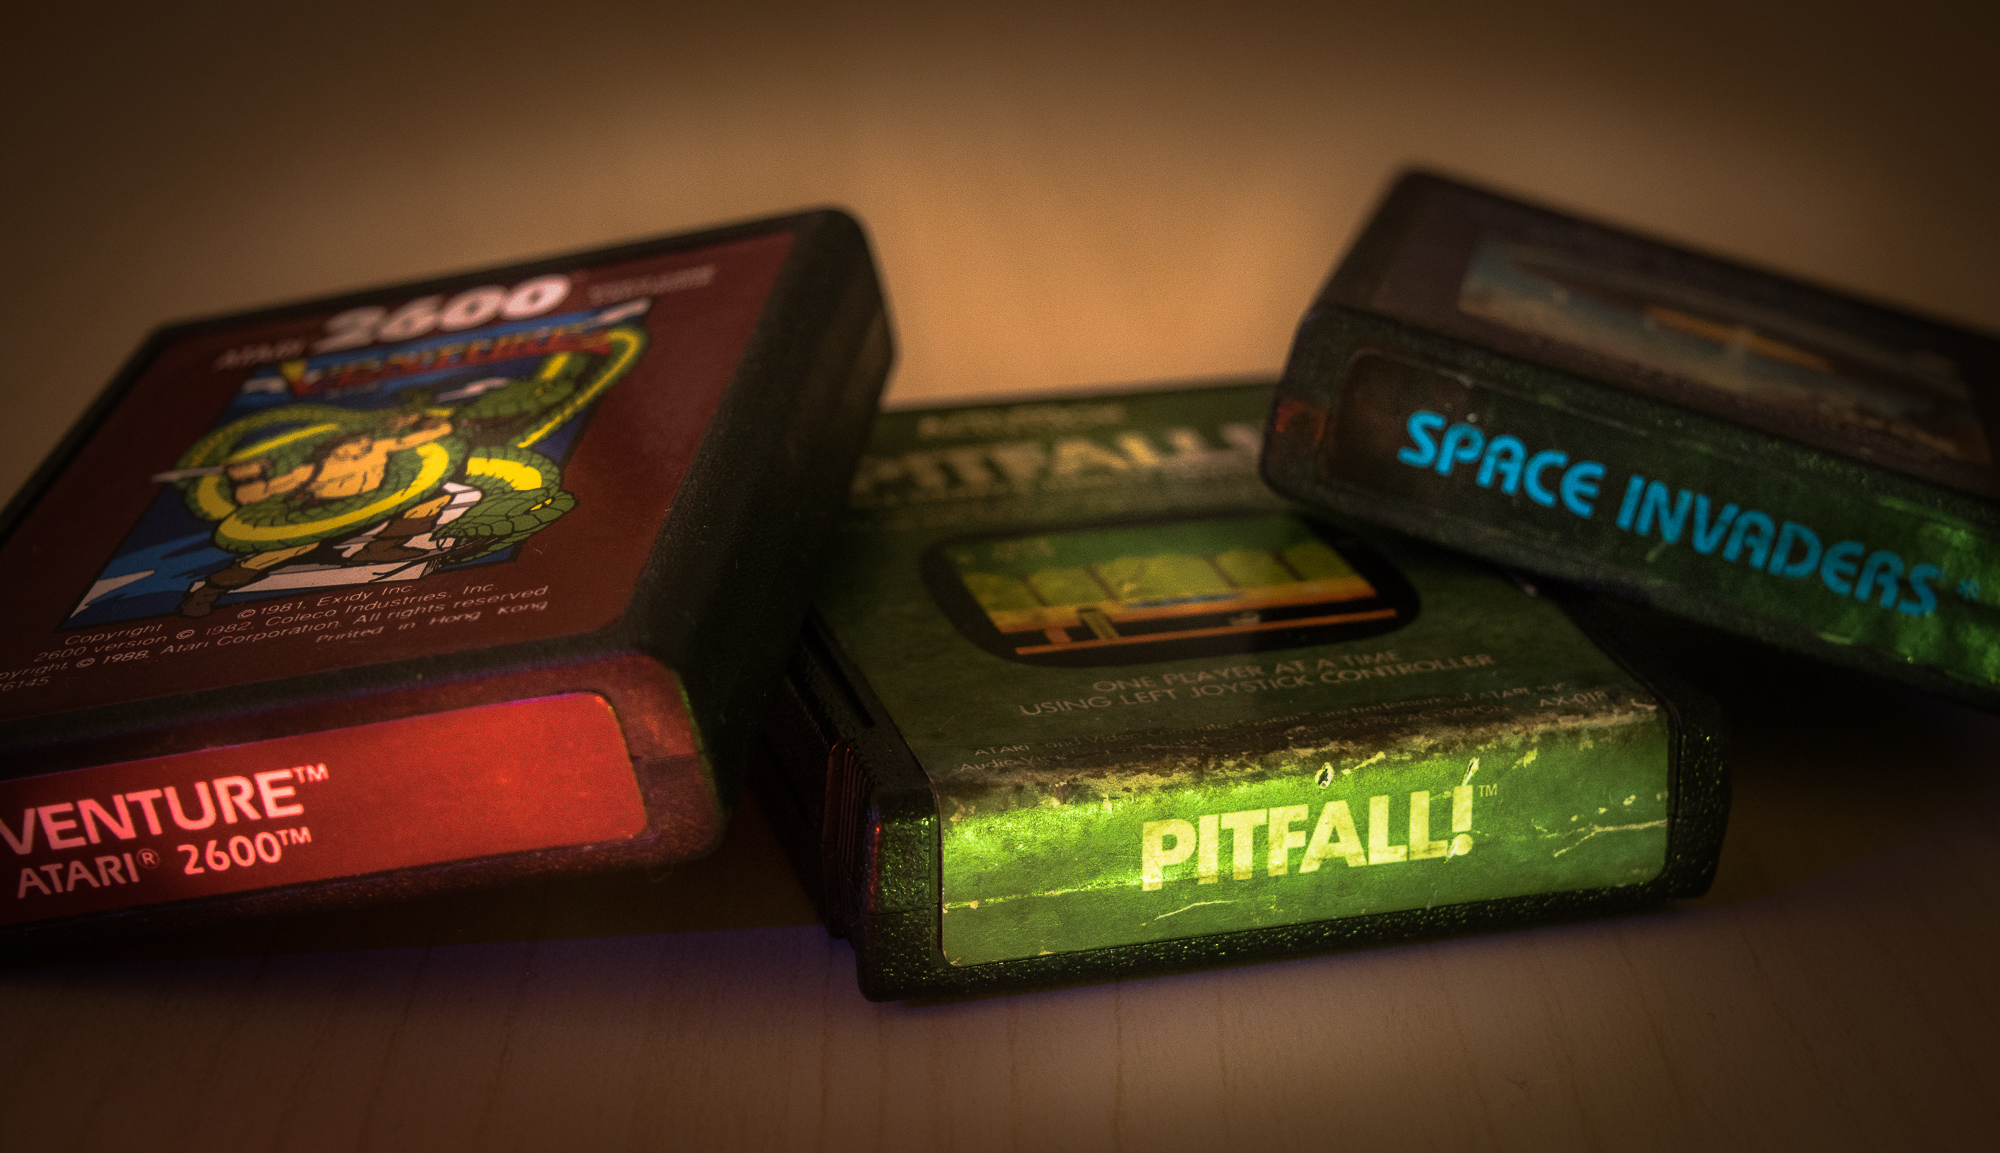 Atari 2600 games: Venture, Pitfall and Space Invaders